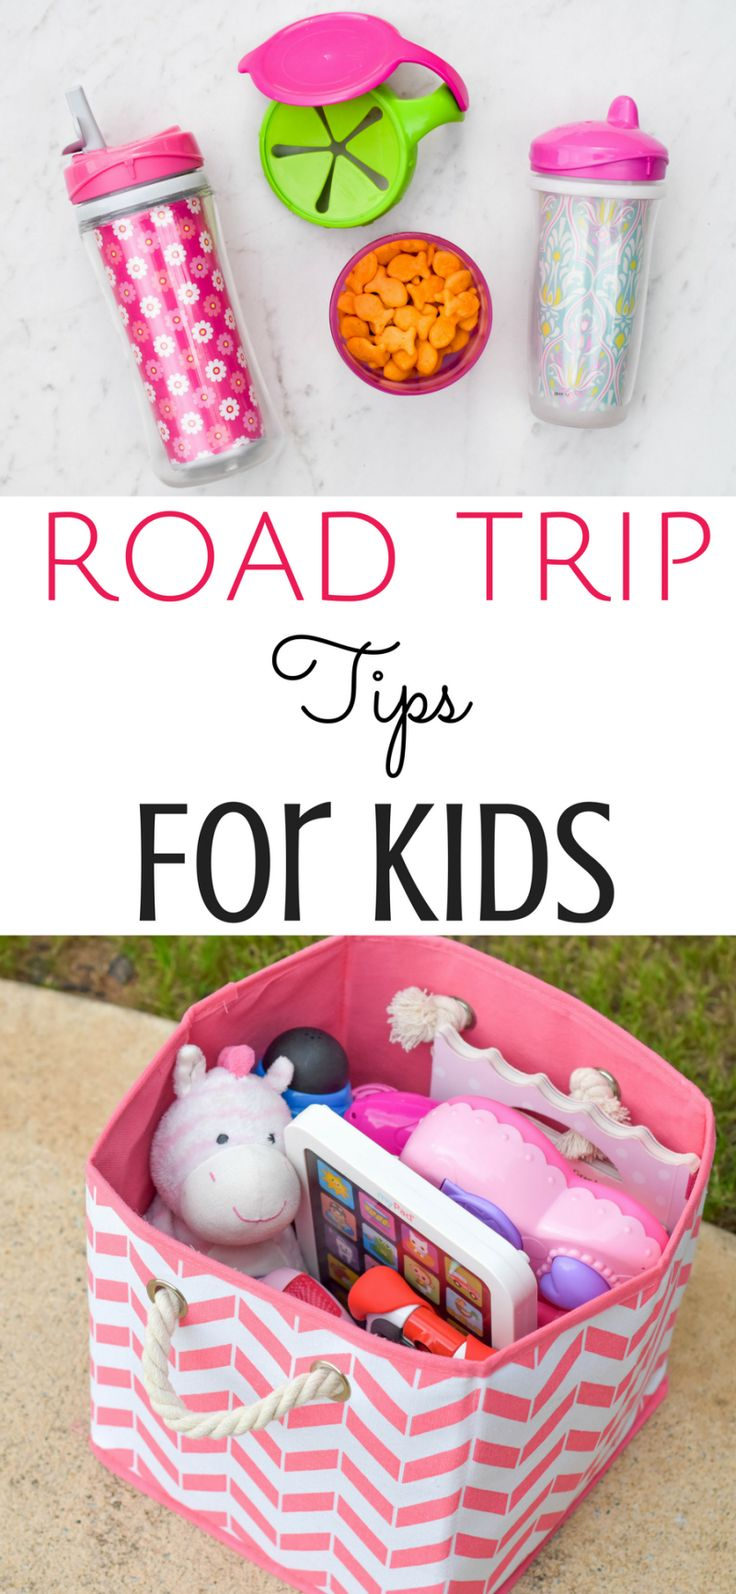 Road Trip | Travel | Kids | Children | Toddlers | Summer Trip | Vacation | Playtex Baby | Snacks | Sippy Cups | Cups | Drinkware | Snack Cups | Road Trip Essentials | Road Trip Tips | Family Vacations | Preschoolers | Toys | Books | Potty Training | Naps